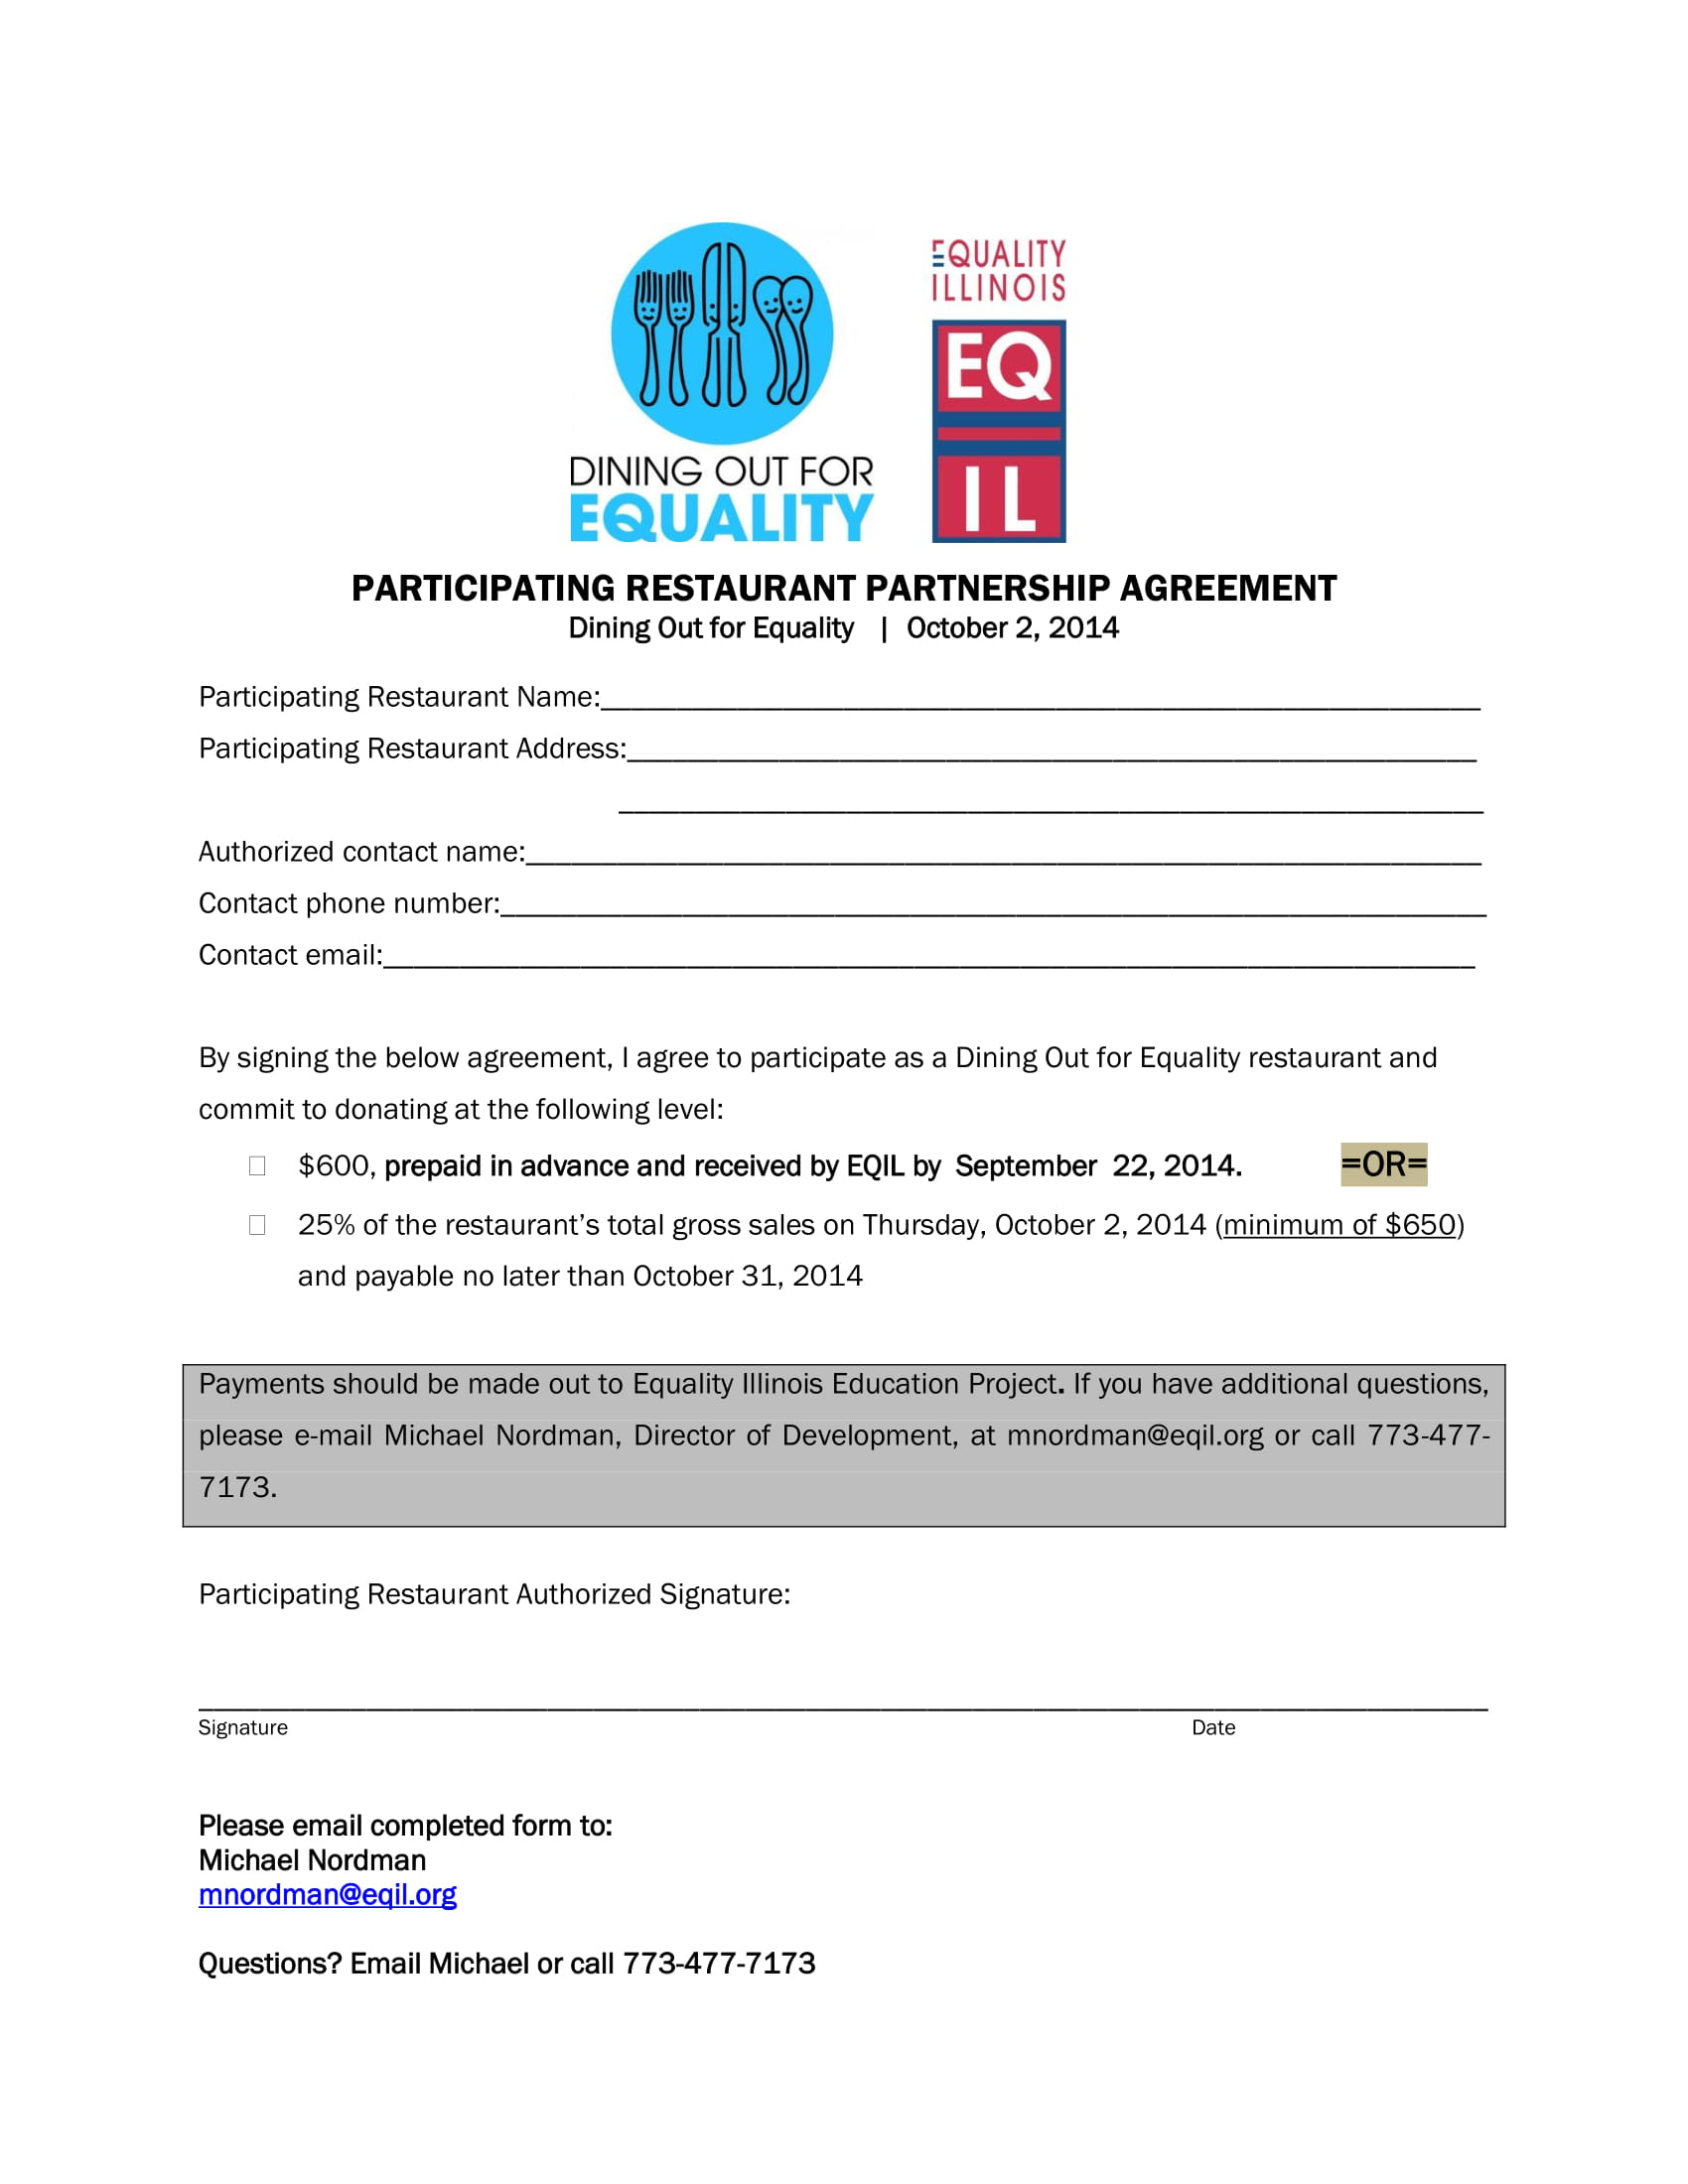 restaurant partnership agreement form 1